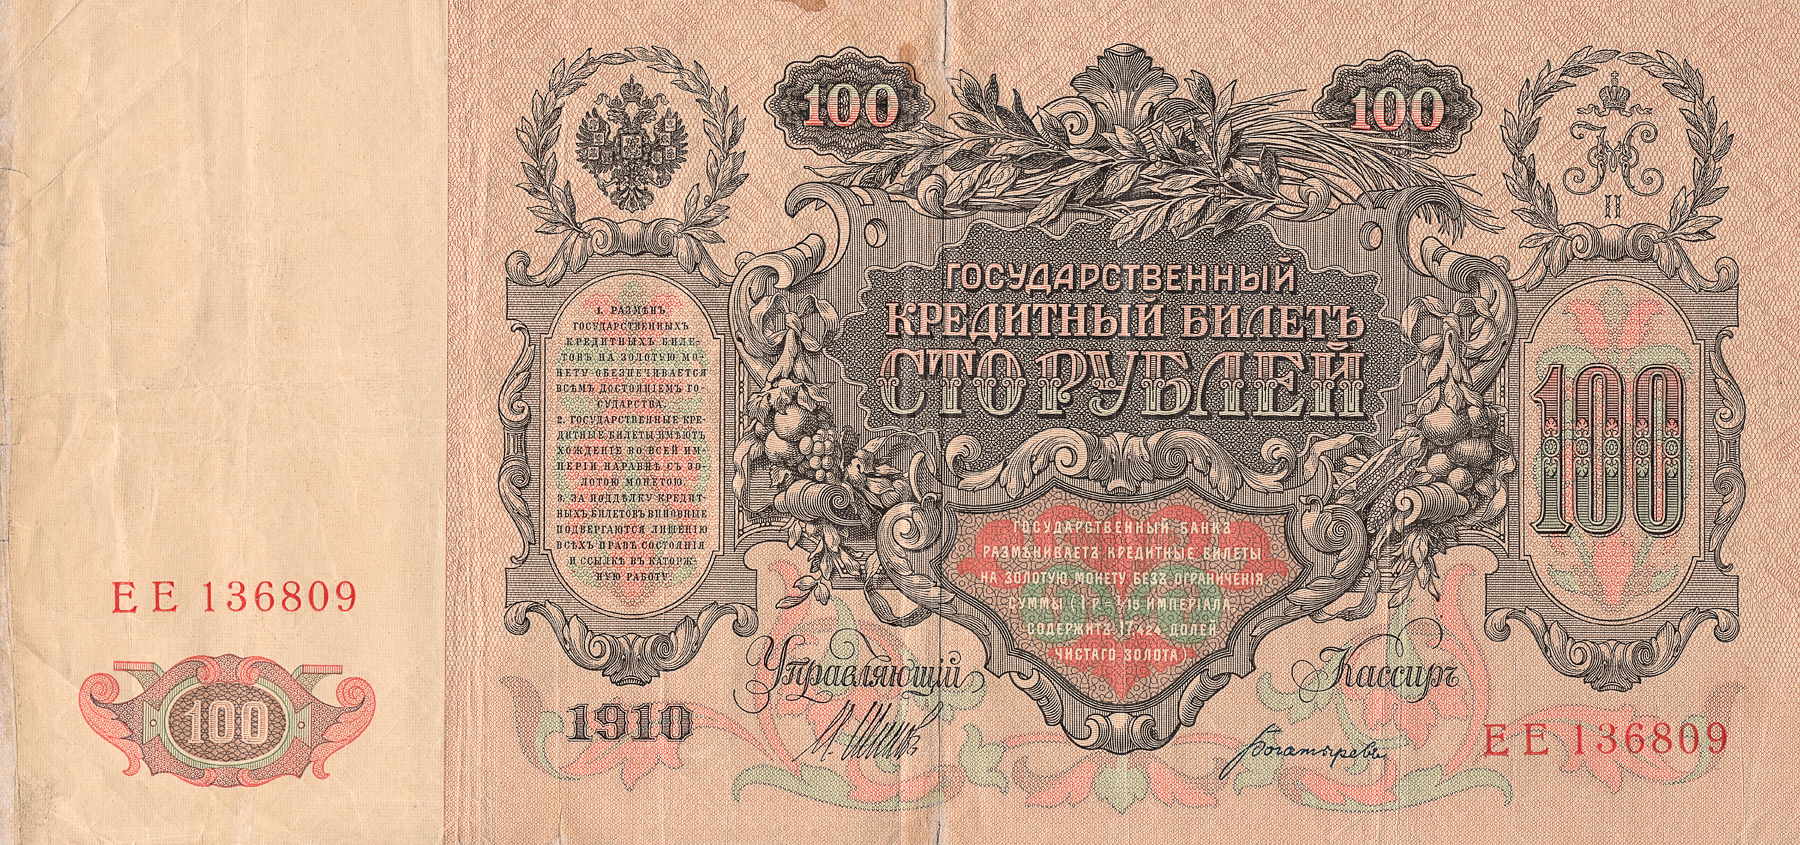 Antique banknote - imperial russia photo